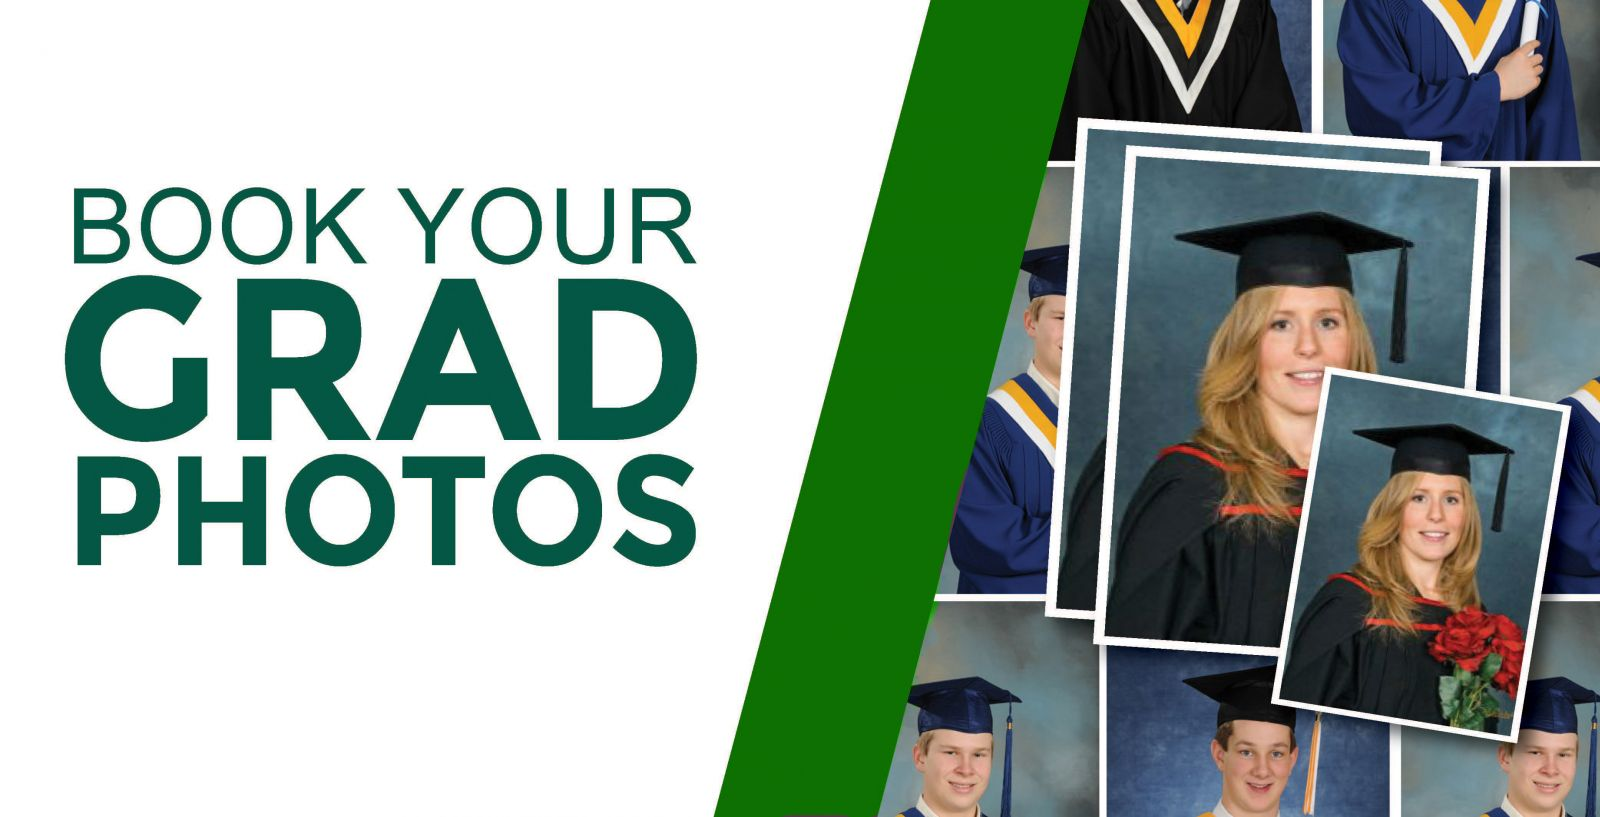 Book Your Grad Photos Ad